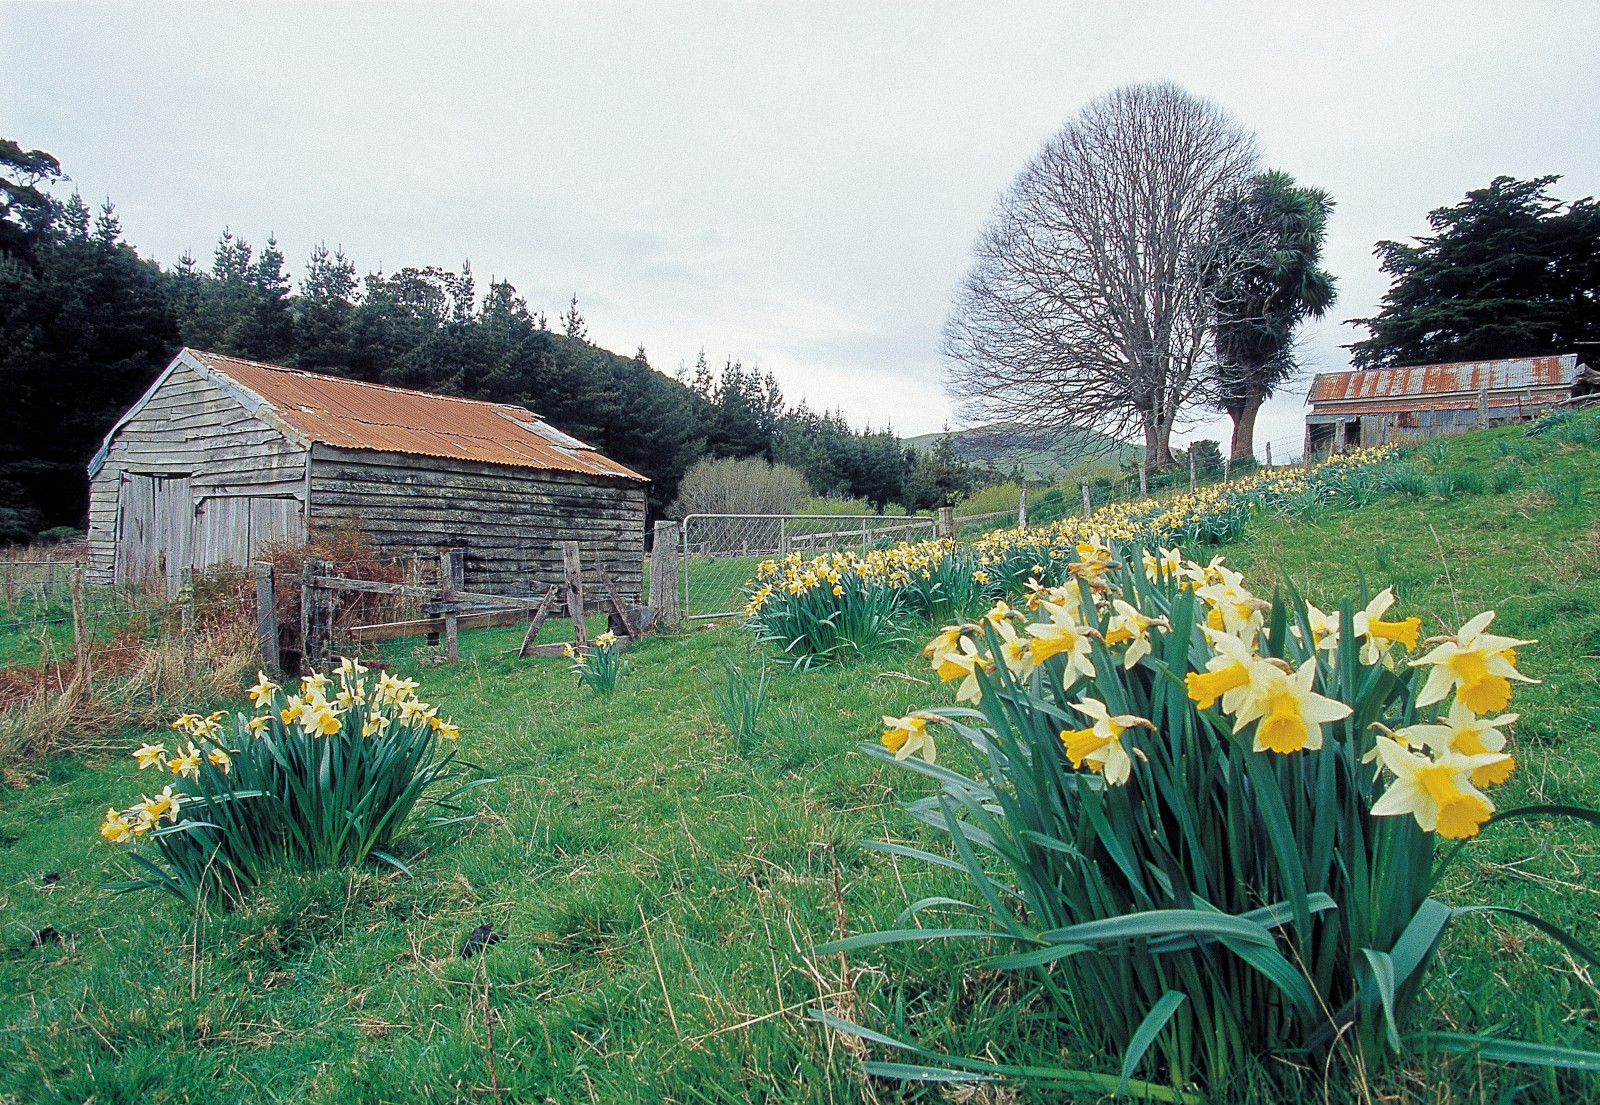 "Throughout the Catlins, soggy paddocks blaze with daffodils during the first flush of spring. Planting daffodil bulbs was a tradition on older New Zealand farms, and in the Catlins traditions linger. John and Ida Burgess farm sheep, cattle and deer on their Tarara Downs property, near Owaka. ""We're pretty old and conventional,"" says John. ""We fatten stock, we grow turnips and we use horses to drive mobs of cattle from one block to another."" Farming started in the Catlins in the 1850s, in the form of small milking herds established on plots cleared from the bush. The earliest farm cottages had tree-fern walls and roofs of tussock thatch."